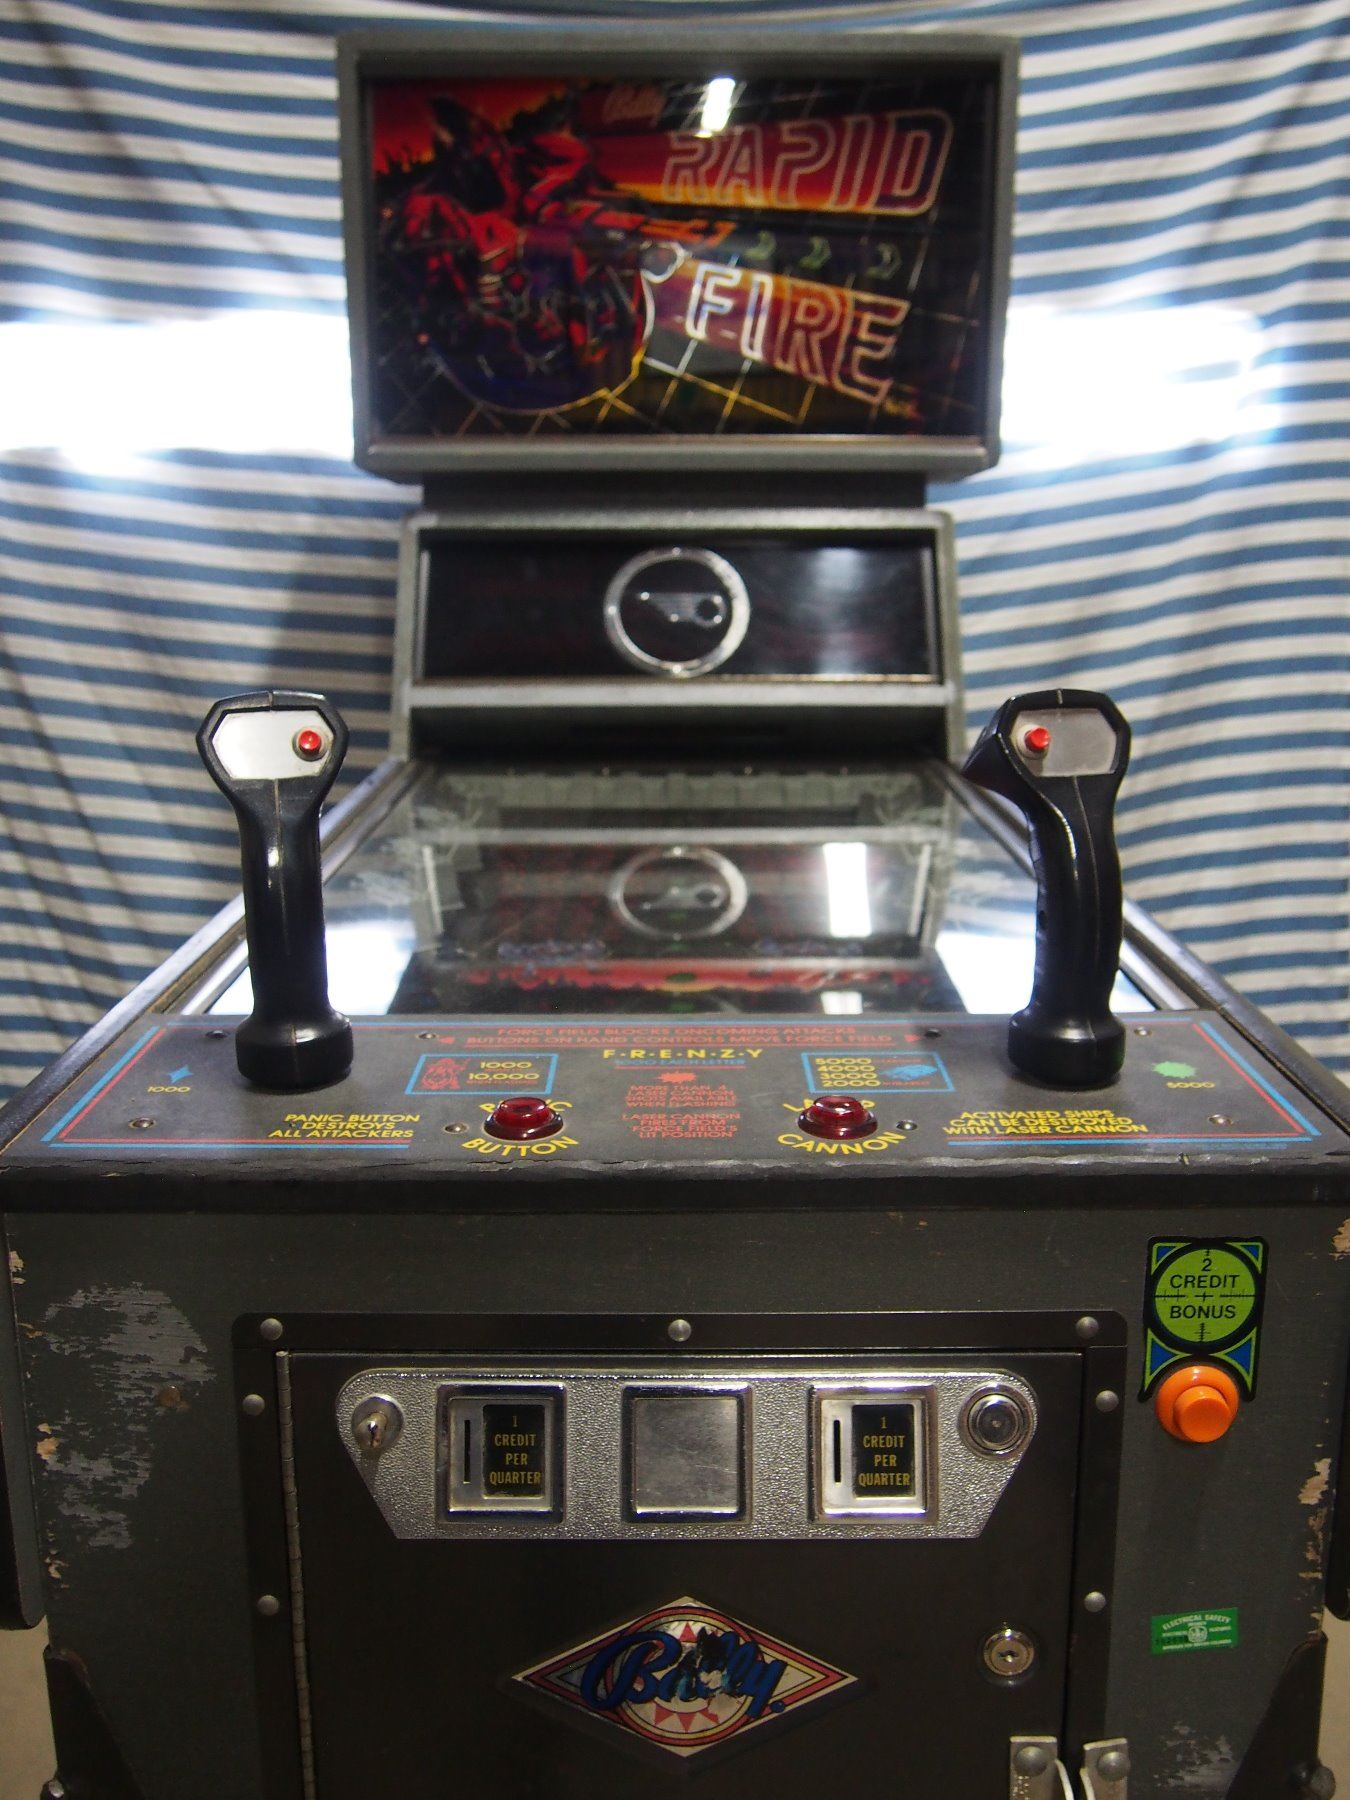 1982 Bally Rapid Fire Pinball Machine - A True Piece of ...